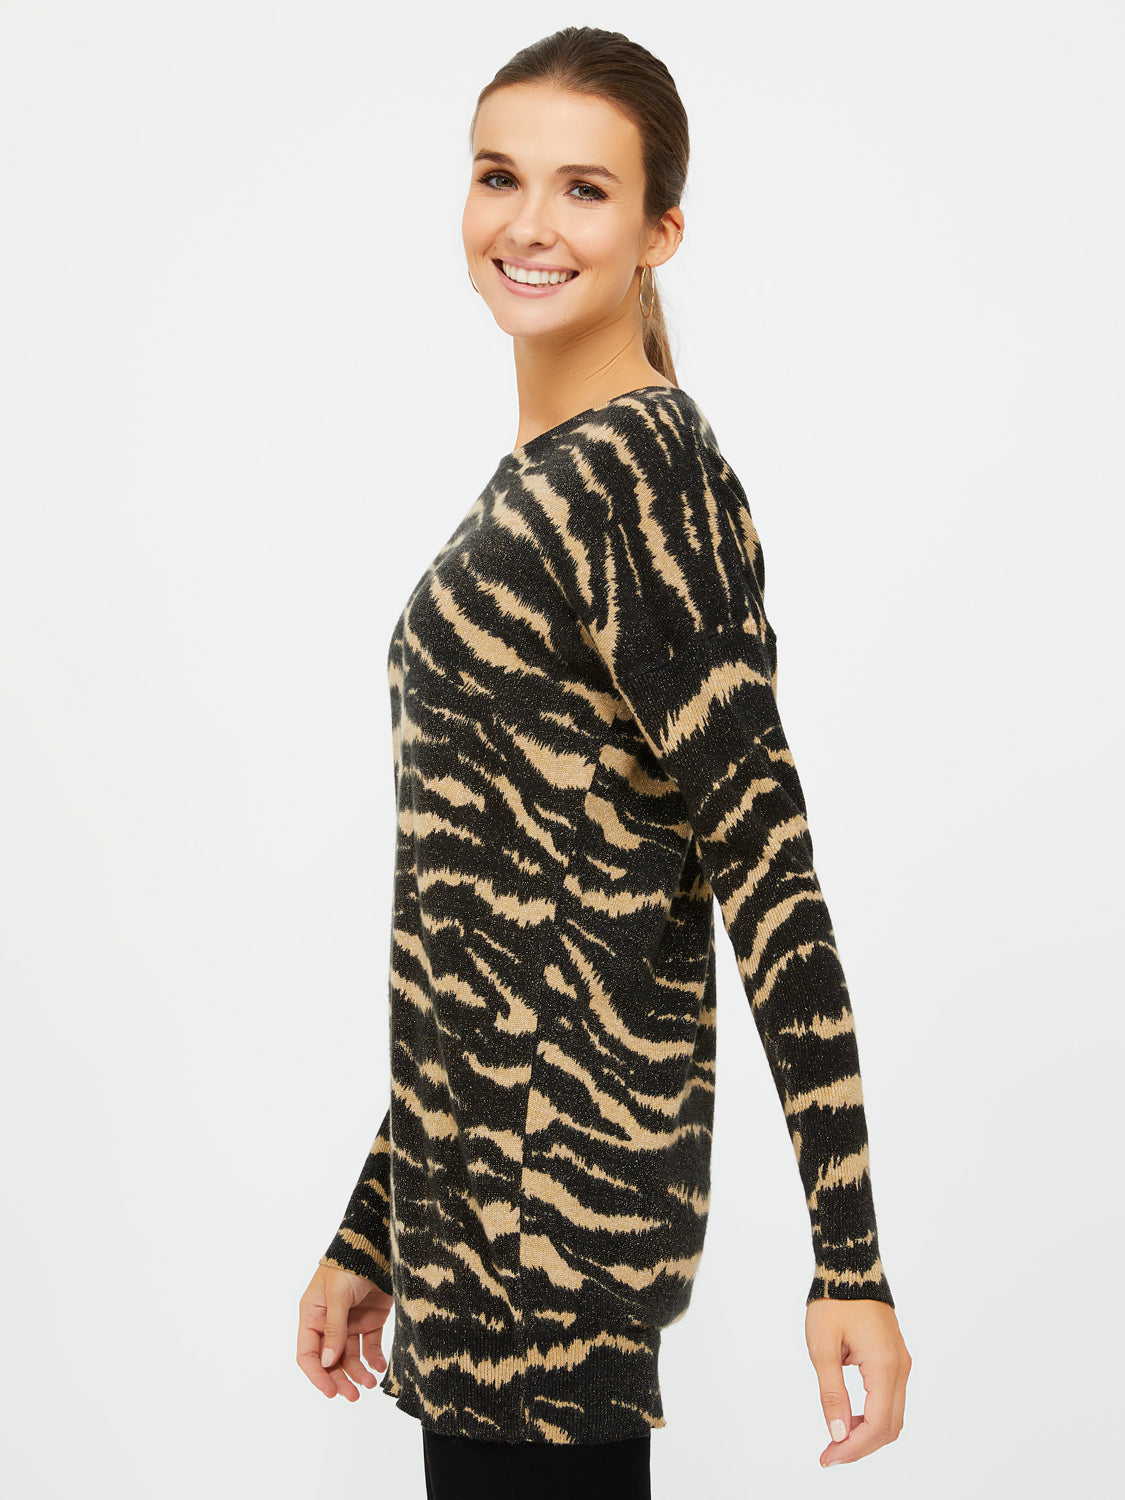 Zebra Metallic Yarn Sweater